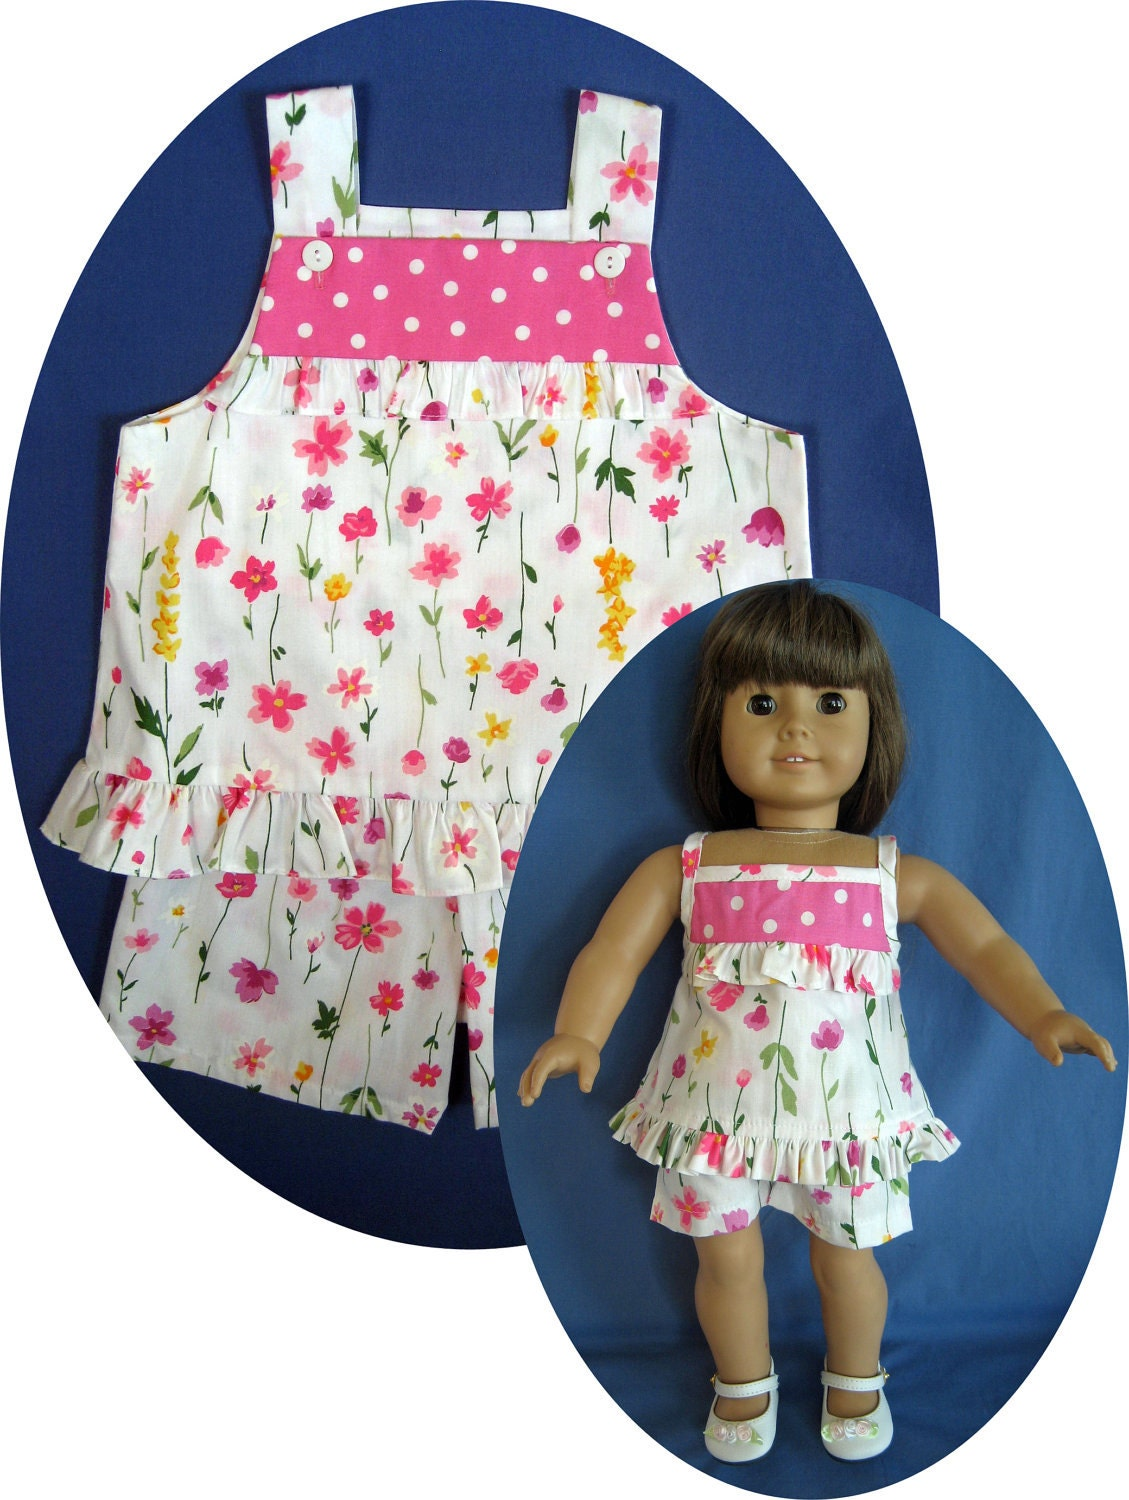 After young girls dress themselves in these fun outfits, they can do the same with a matching look made just for their doll. Clothed in the same cute outfits—which feature details from glitter patterns to ribbons and bows—they'll feel stylishly coordinated during playdates or photo sessions.